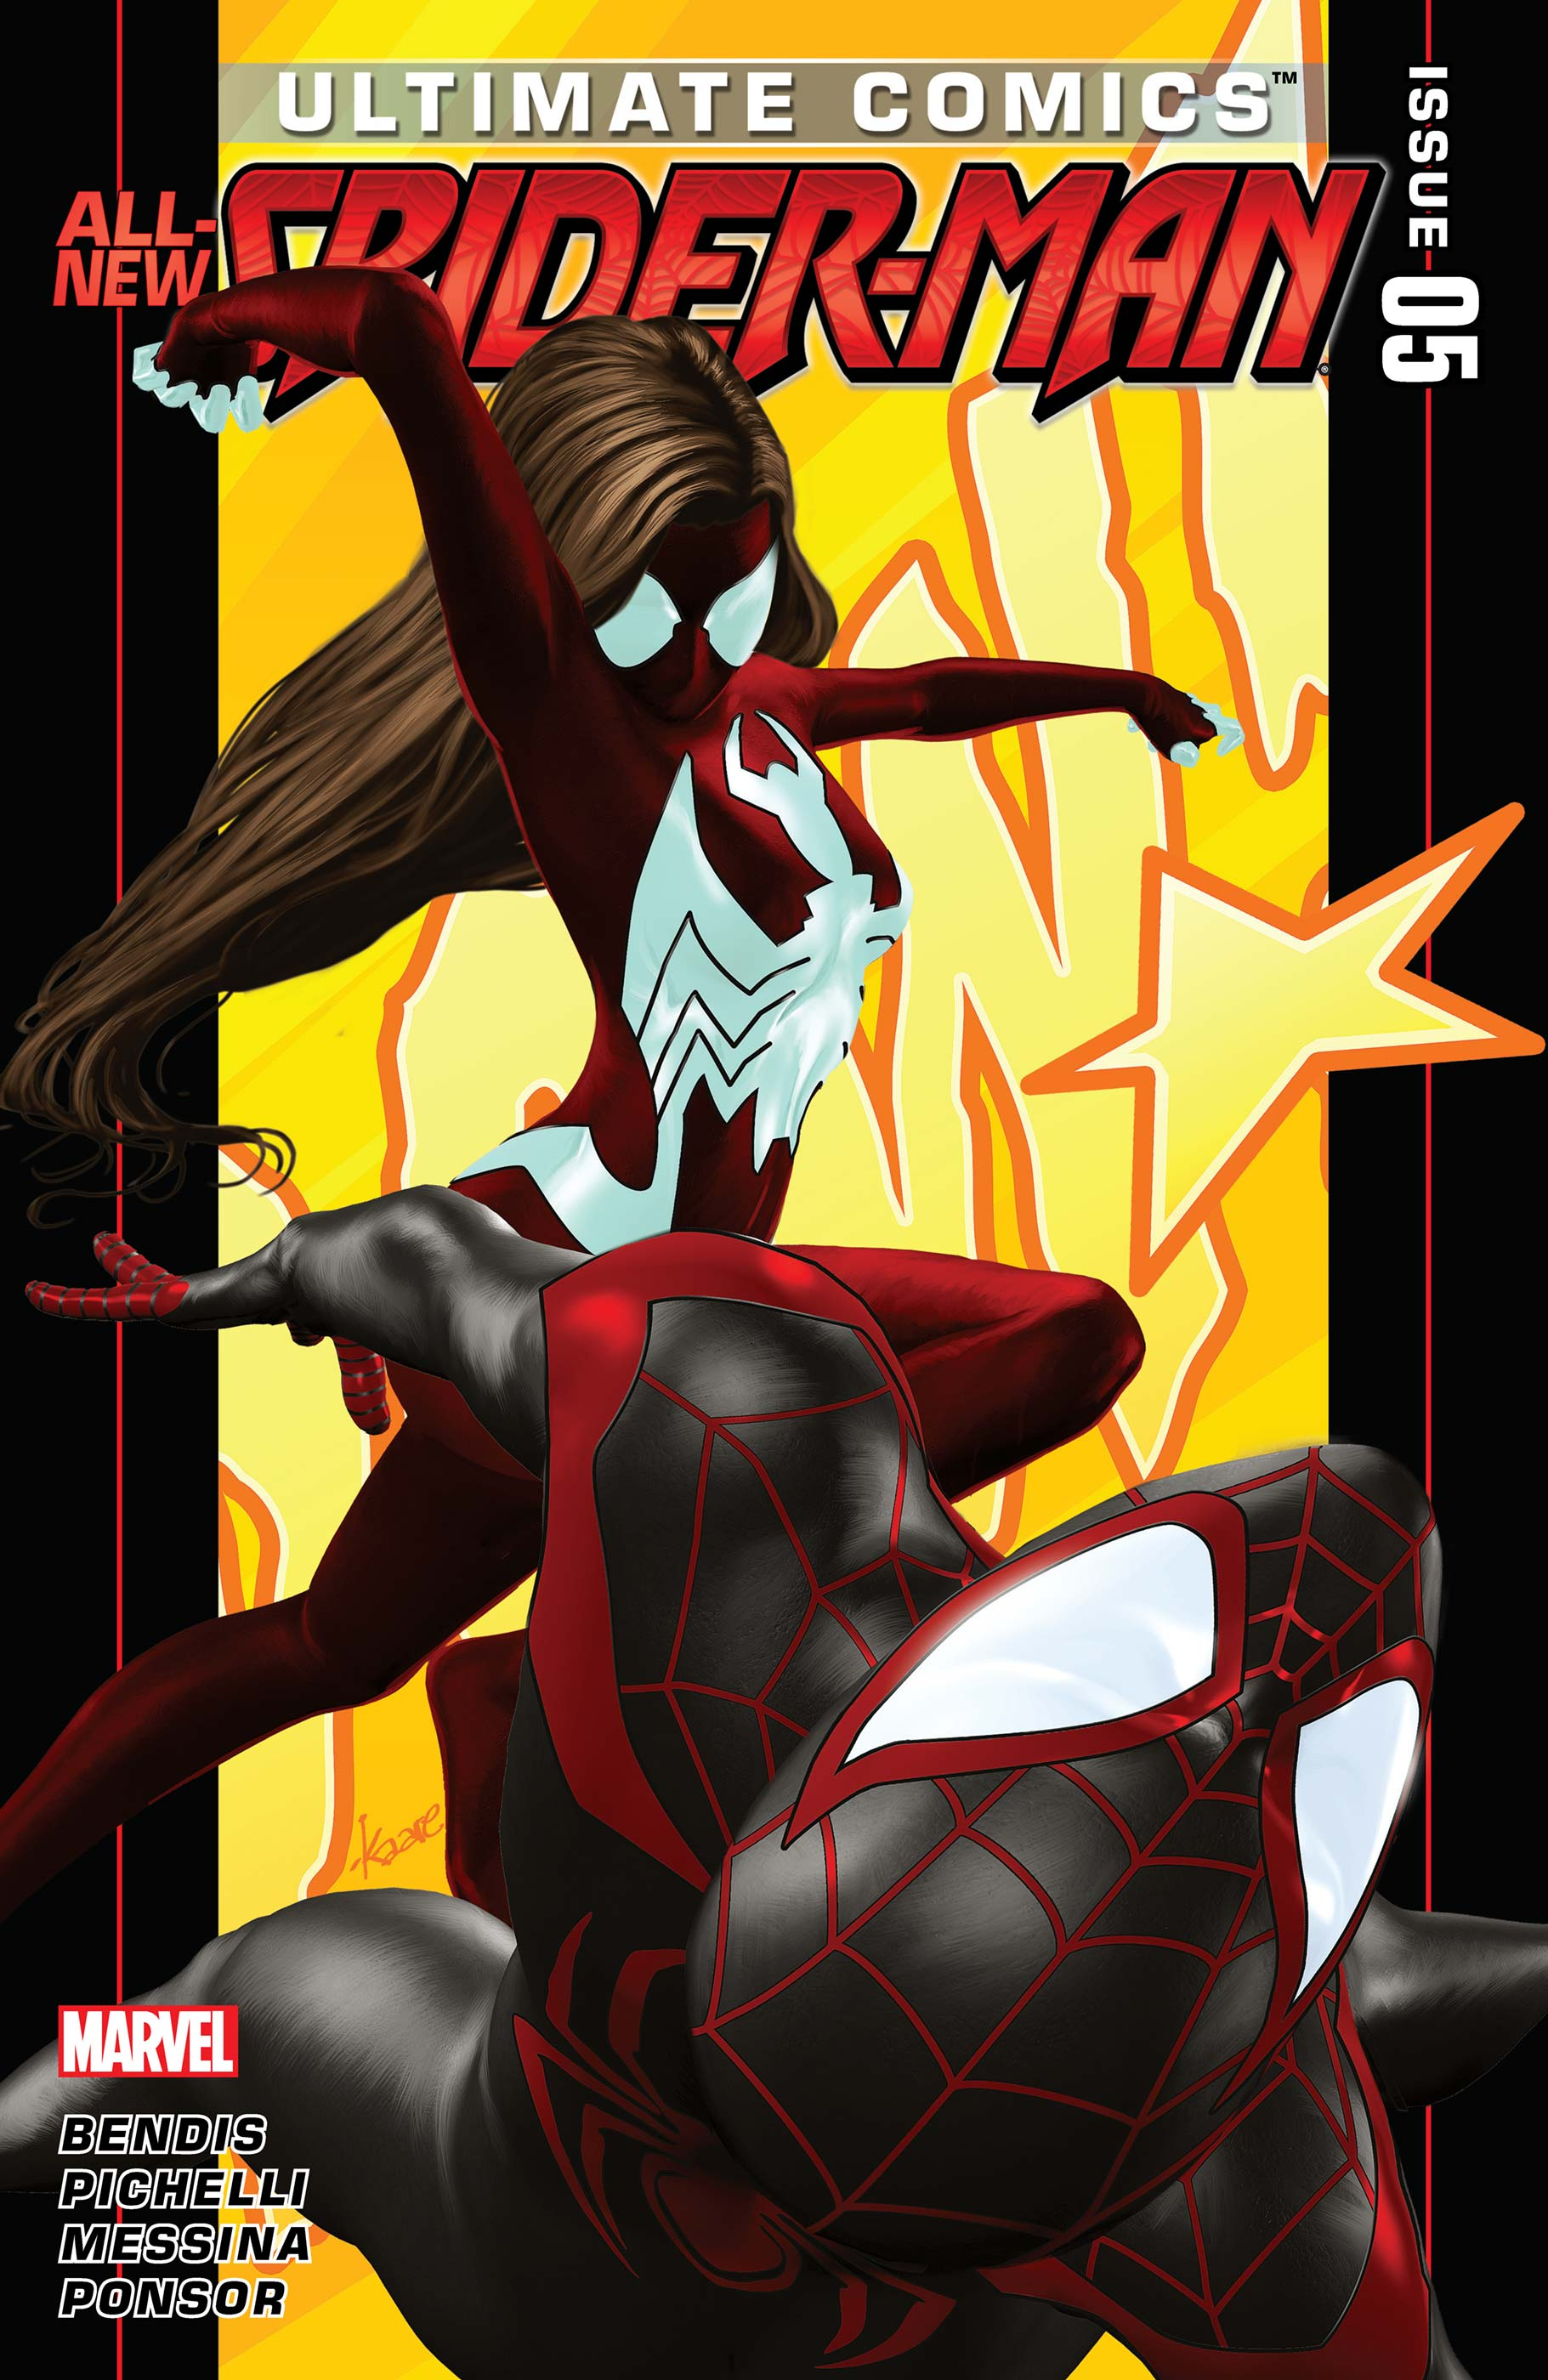 Ultimate Comics Spider-Man (2011) #5